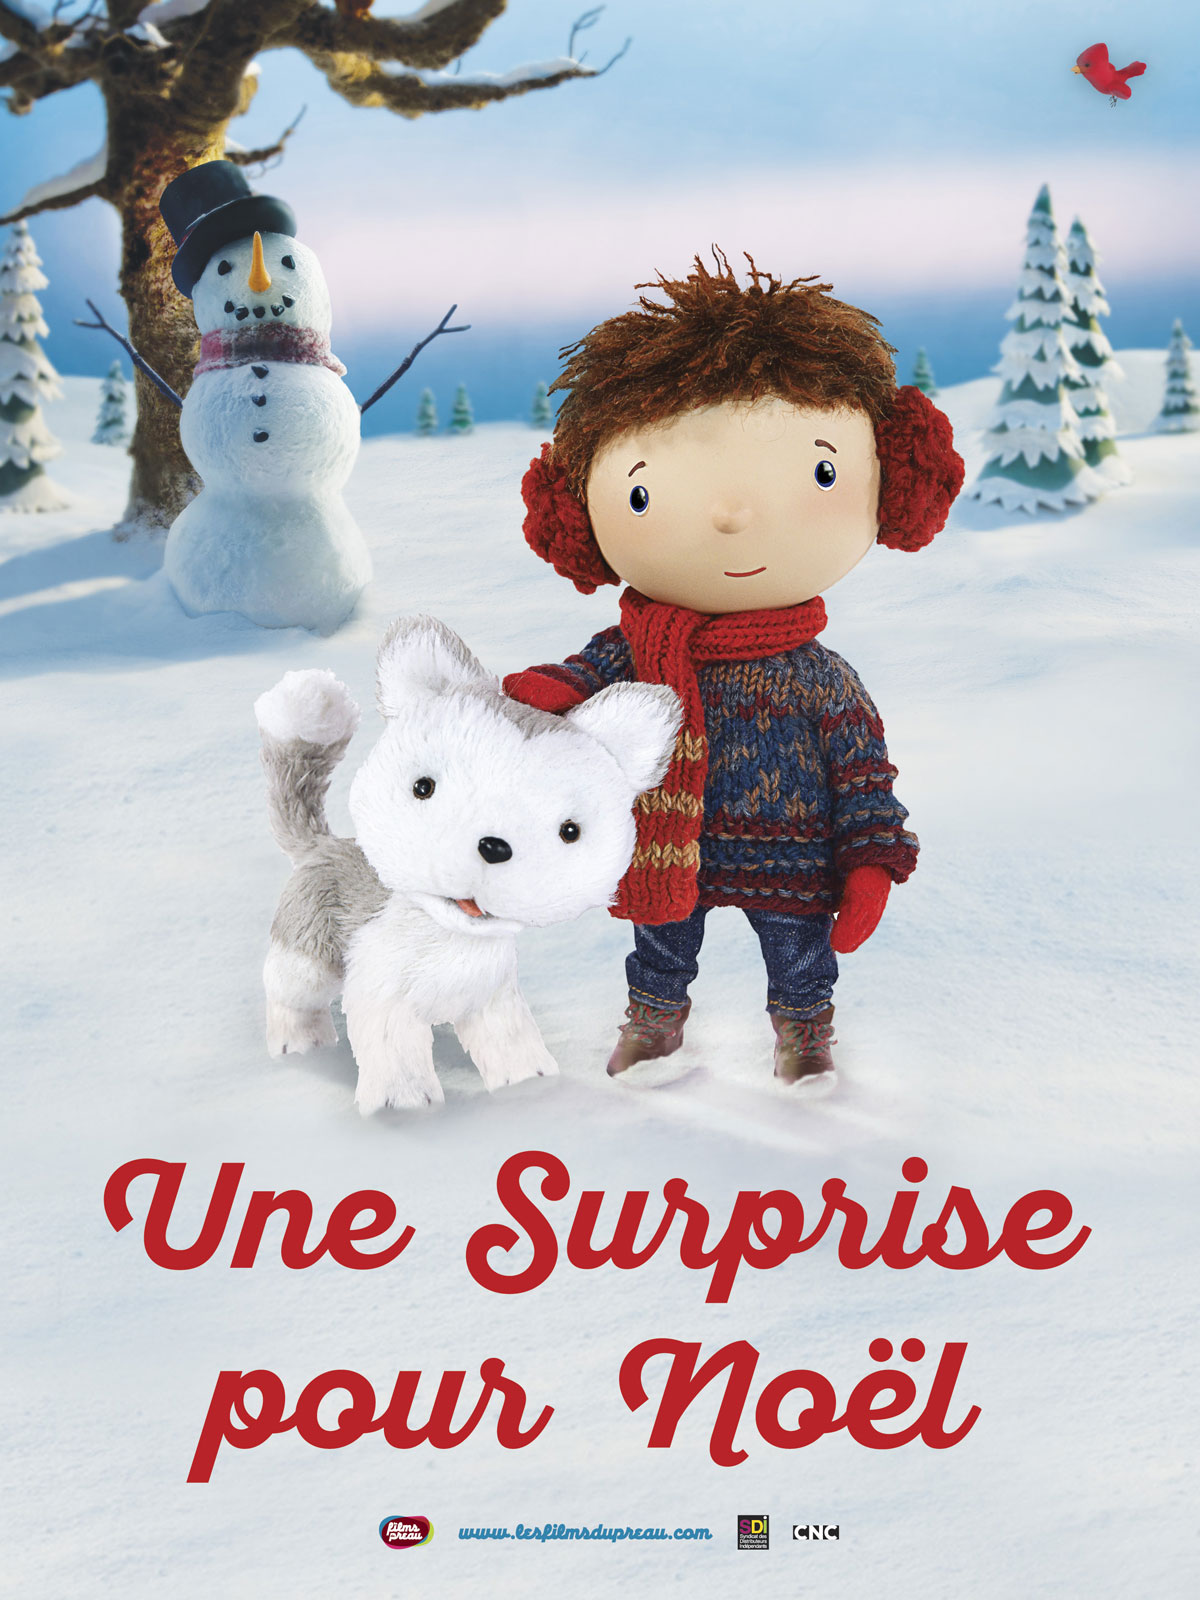 dessin animé de noel en streaming Une surprise pour Noël   film 2015   AlloCiné dessin animé de noel en streaming